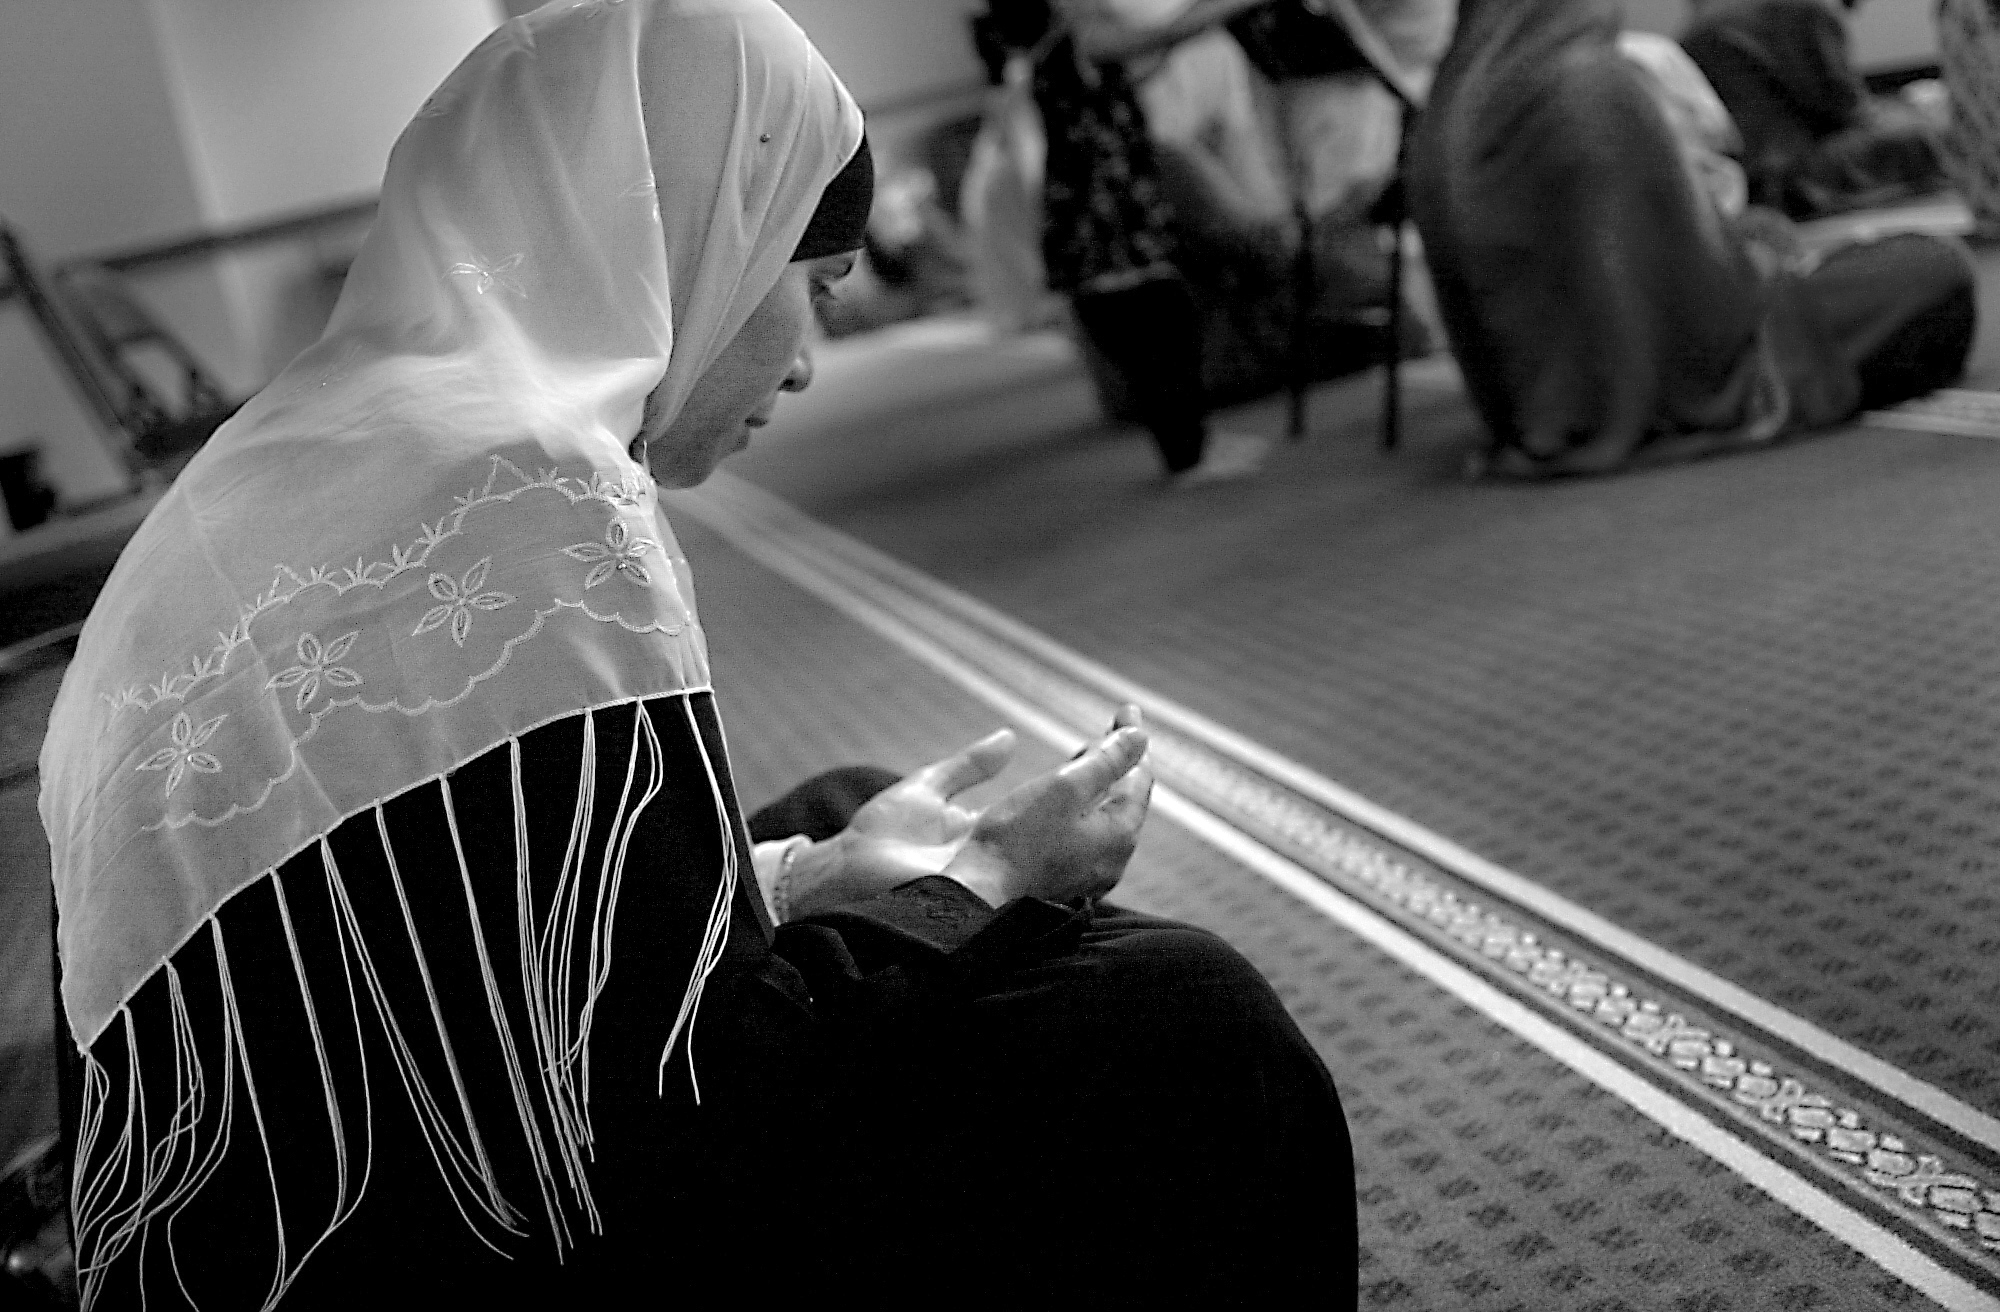 Image of a woman praying in a mosque